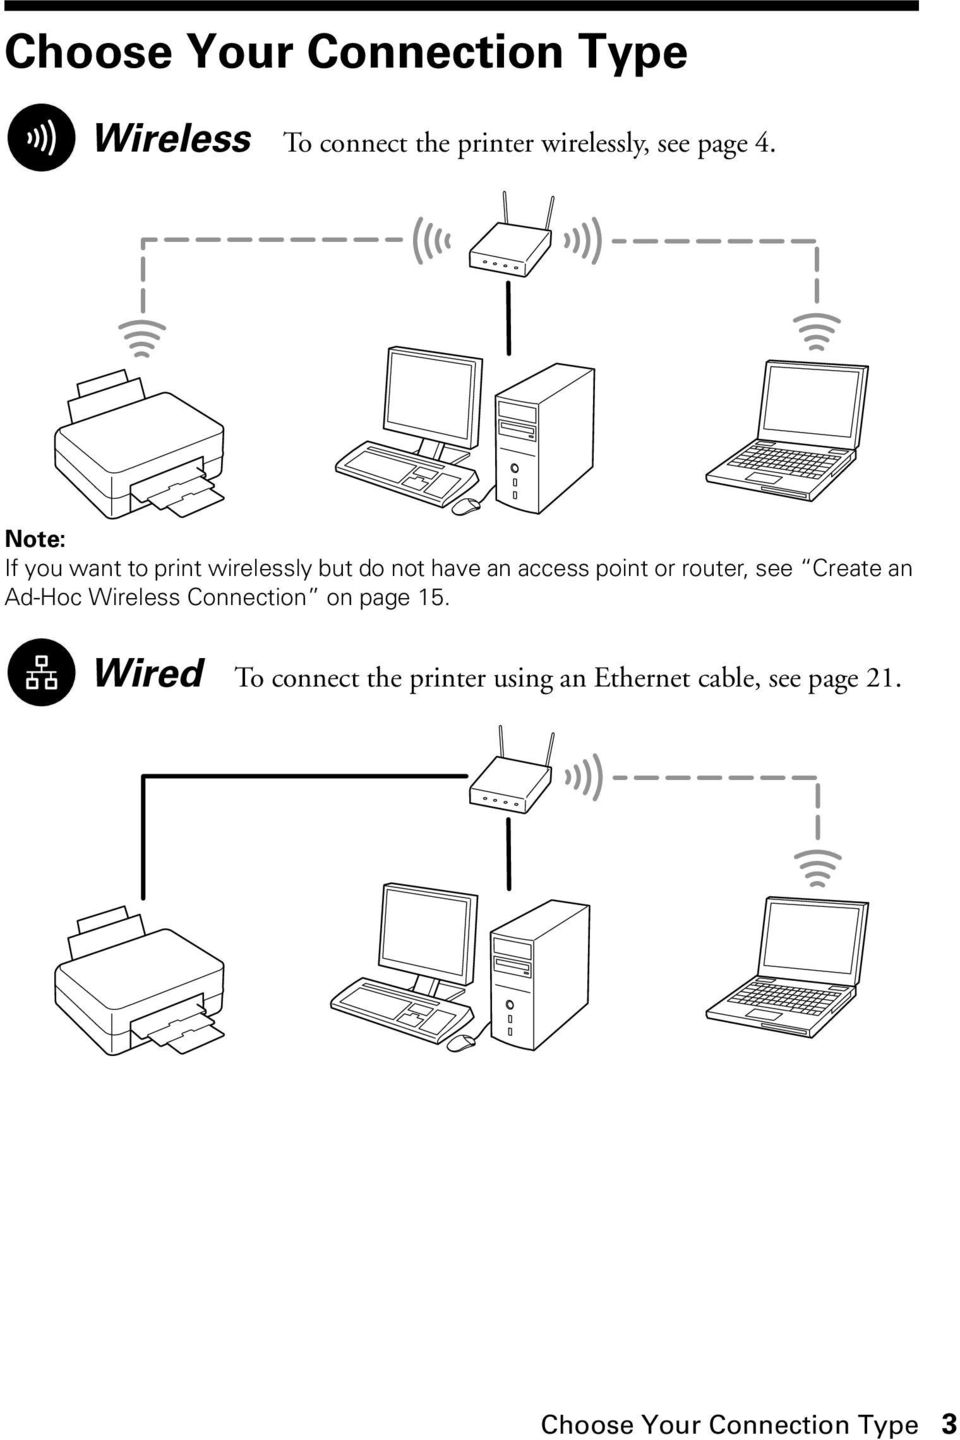 Note: If you want to print wirelessly but do not have an access point or